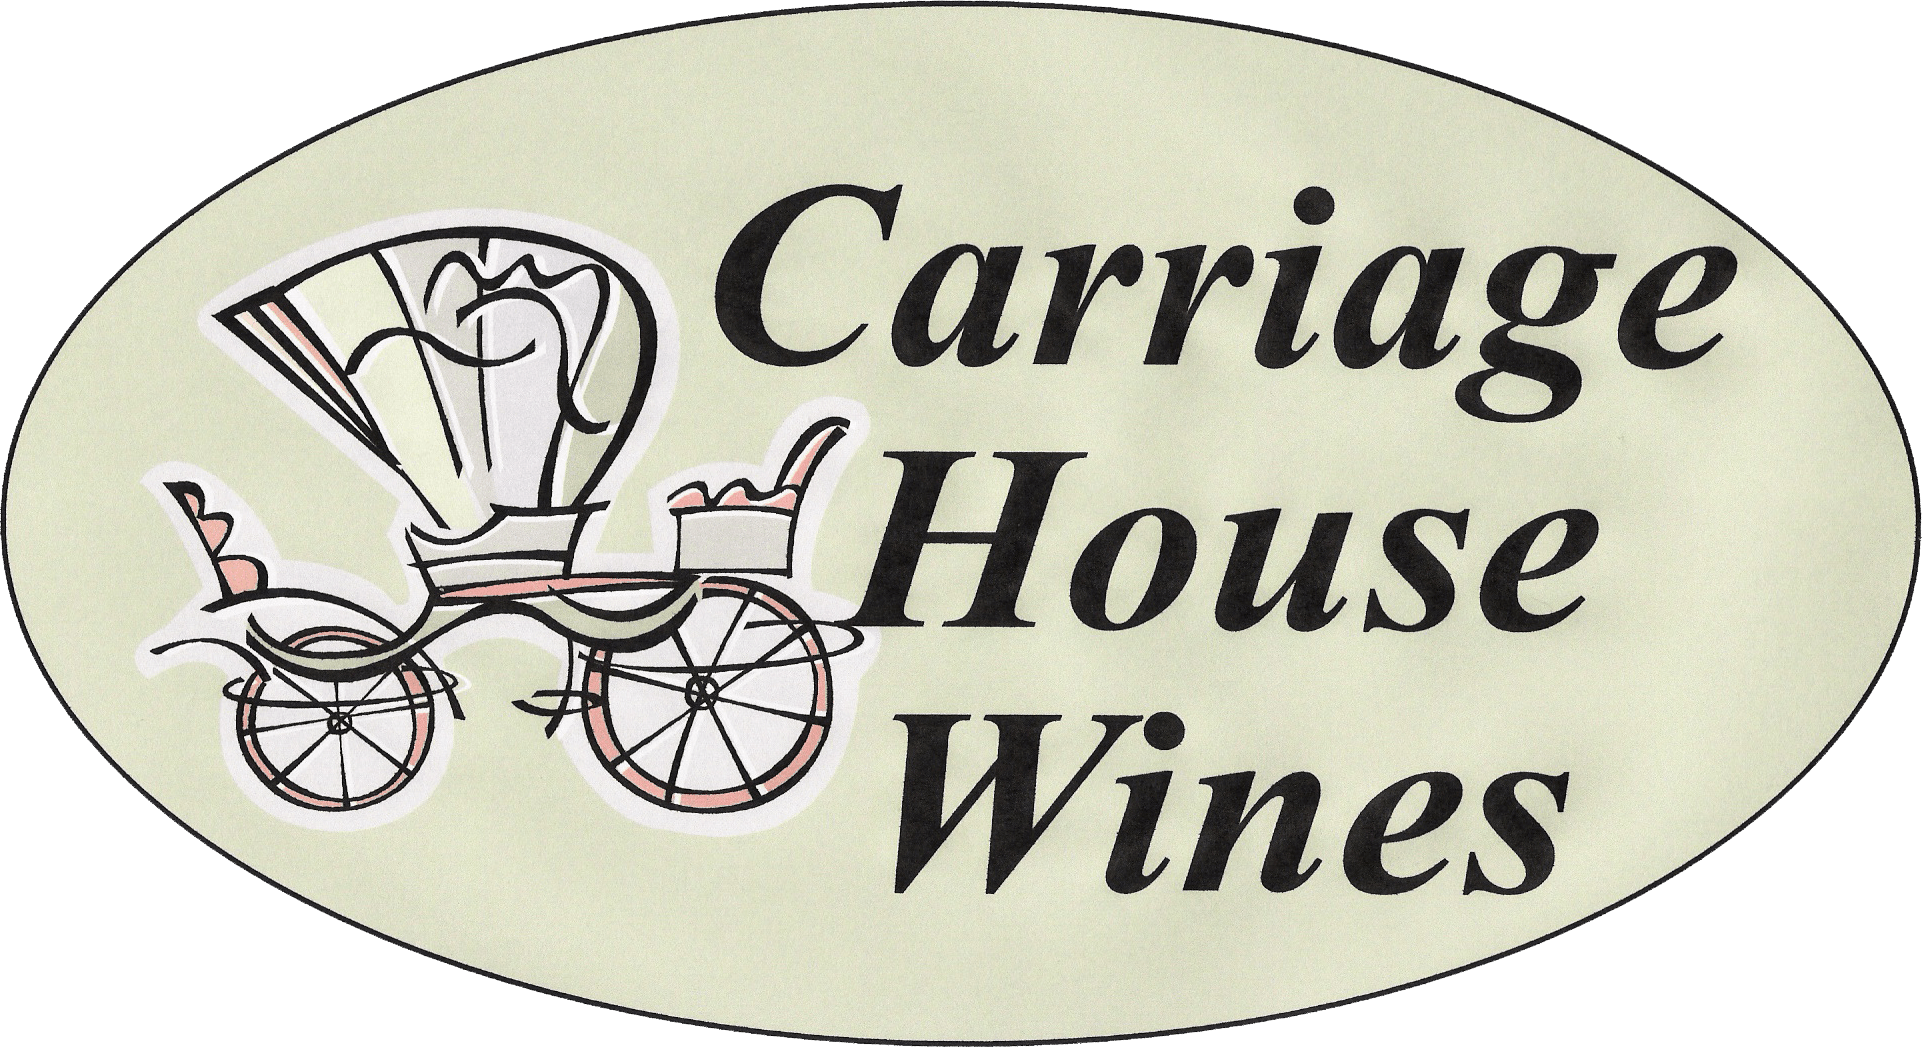 Carraige House Wines